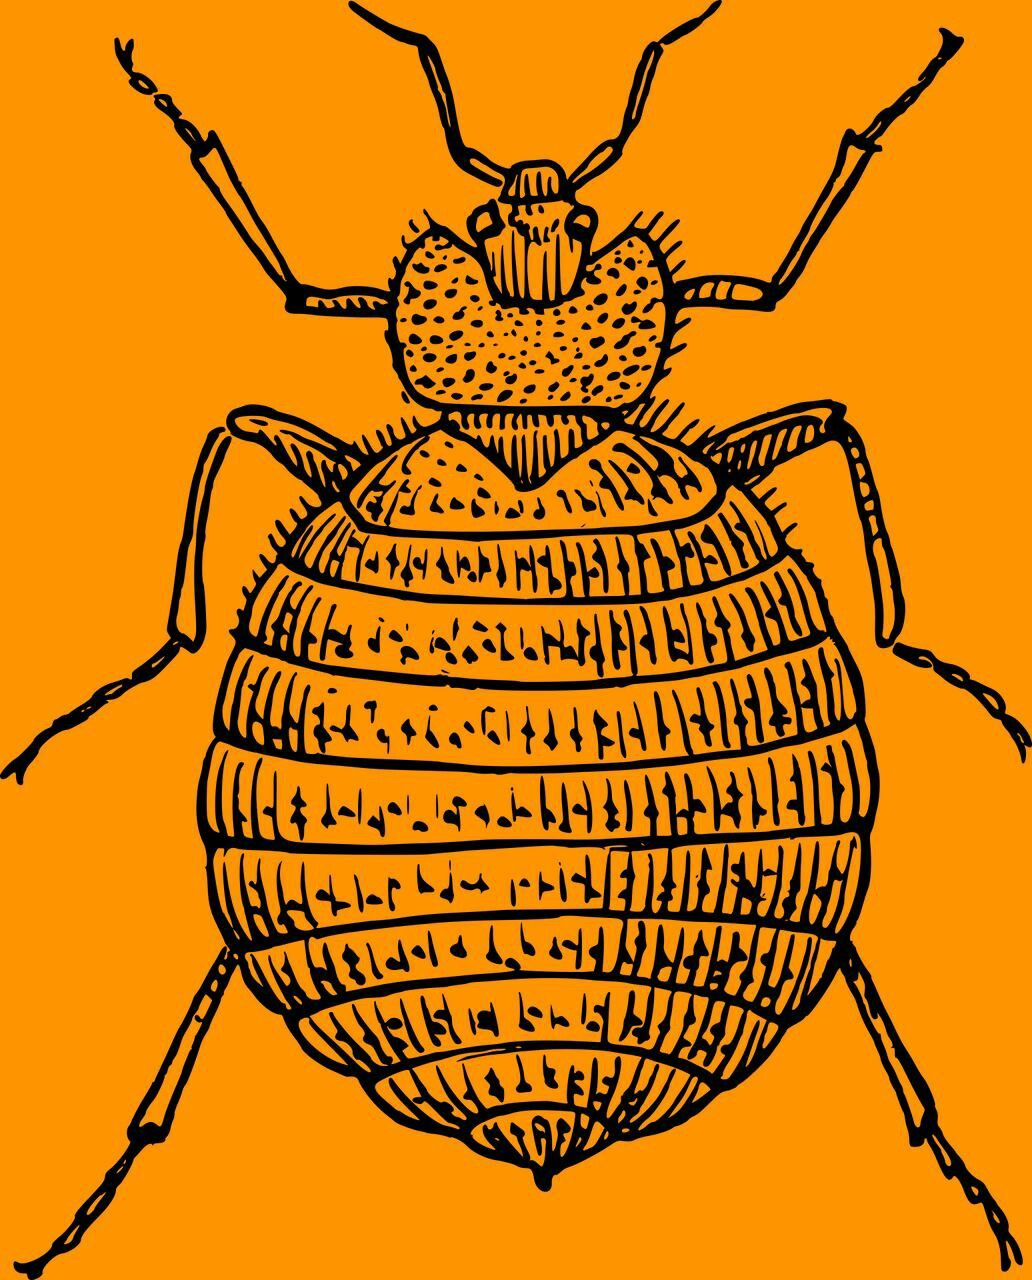 Read more about the symptoms of a bed bug infestation